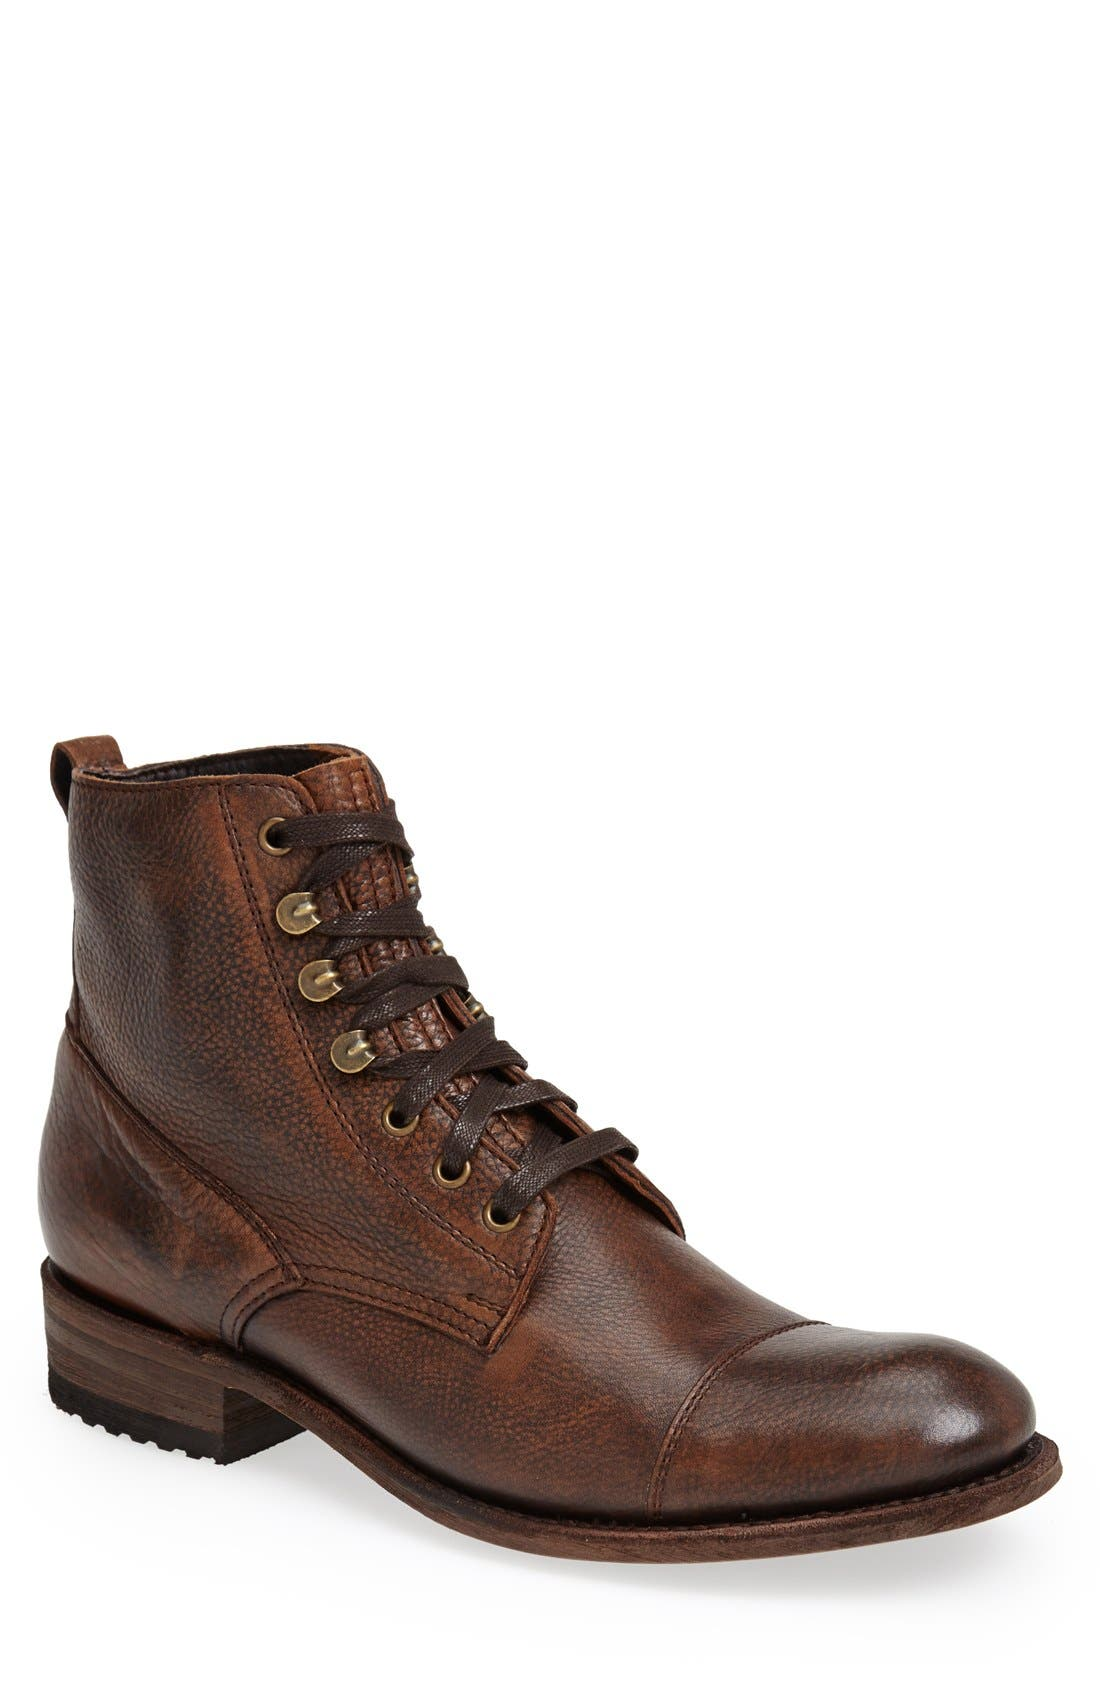 'Station' Cap Toe Boot,                             Main thumbnail 1, color,                             200